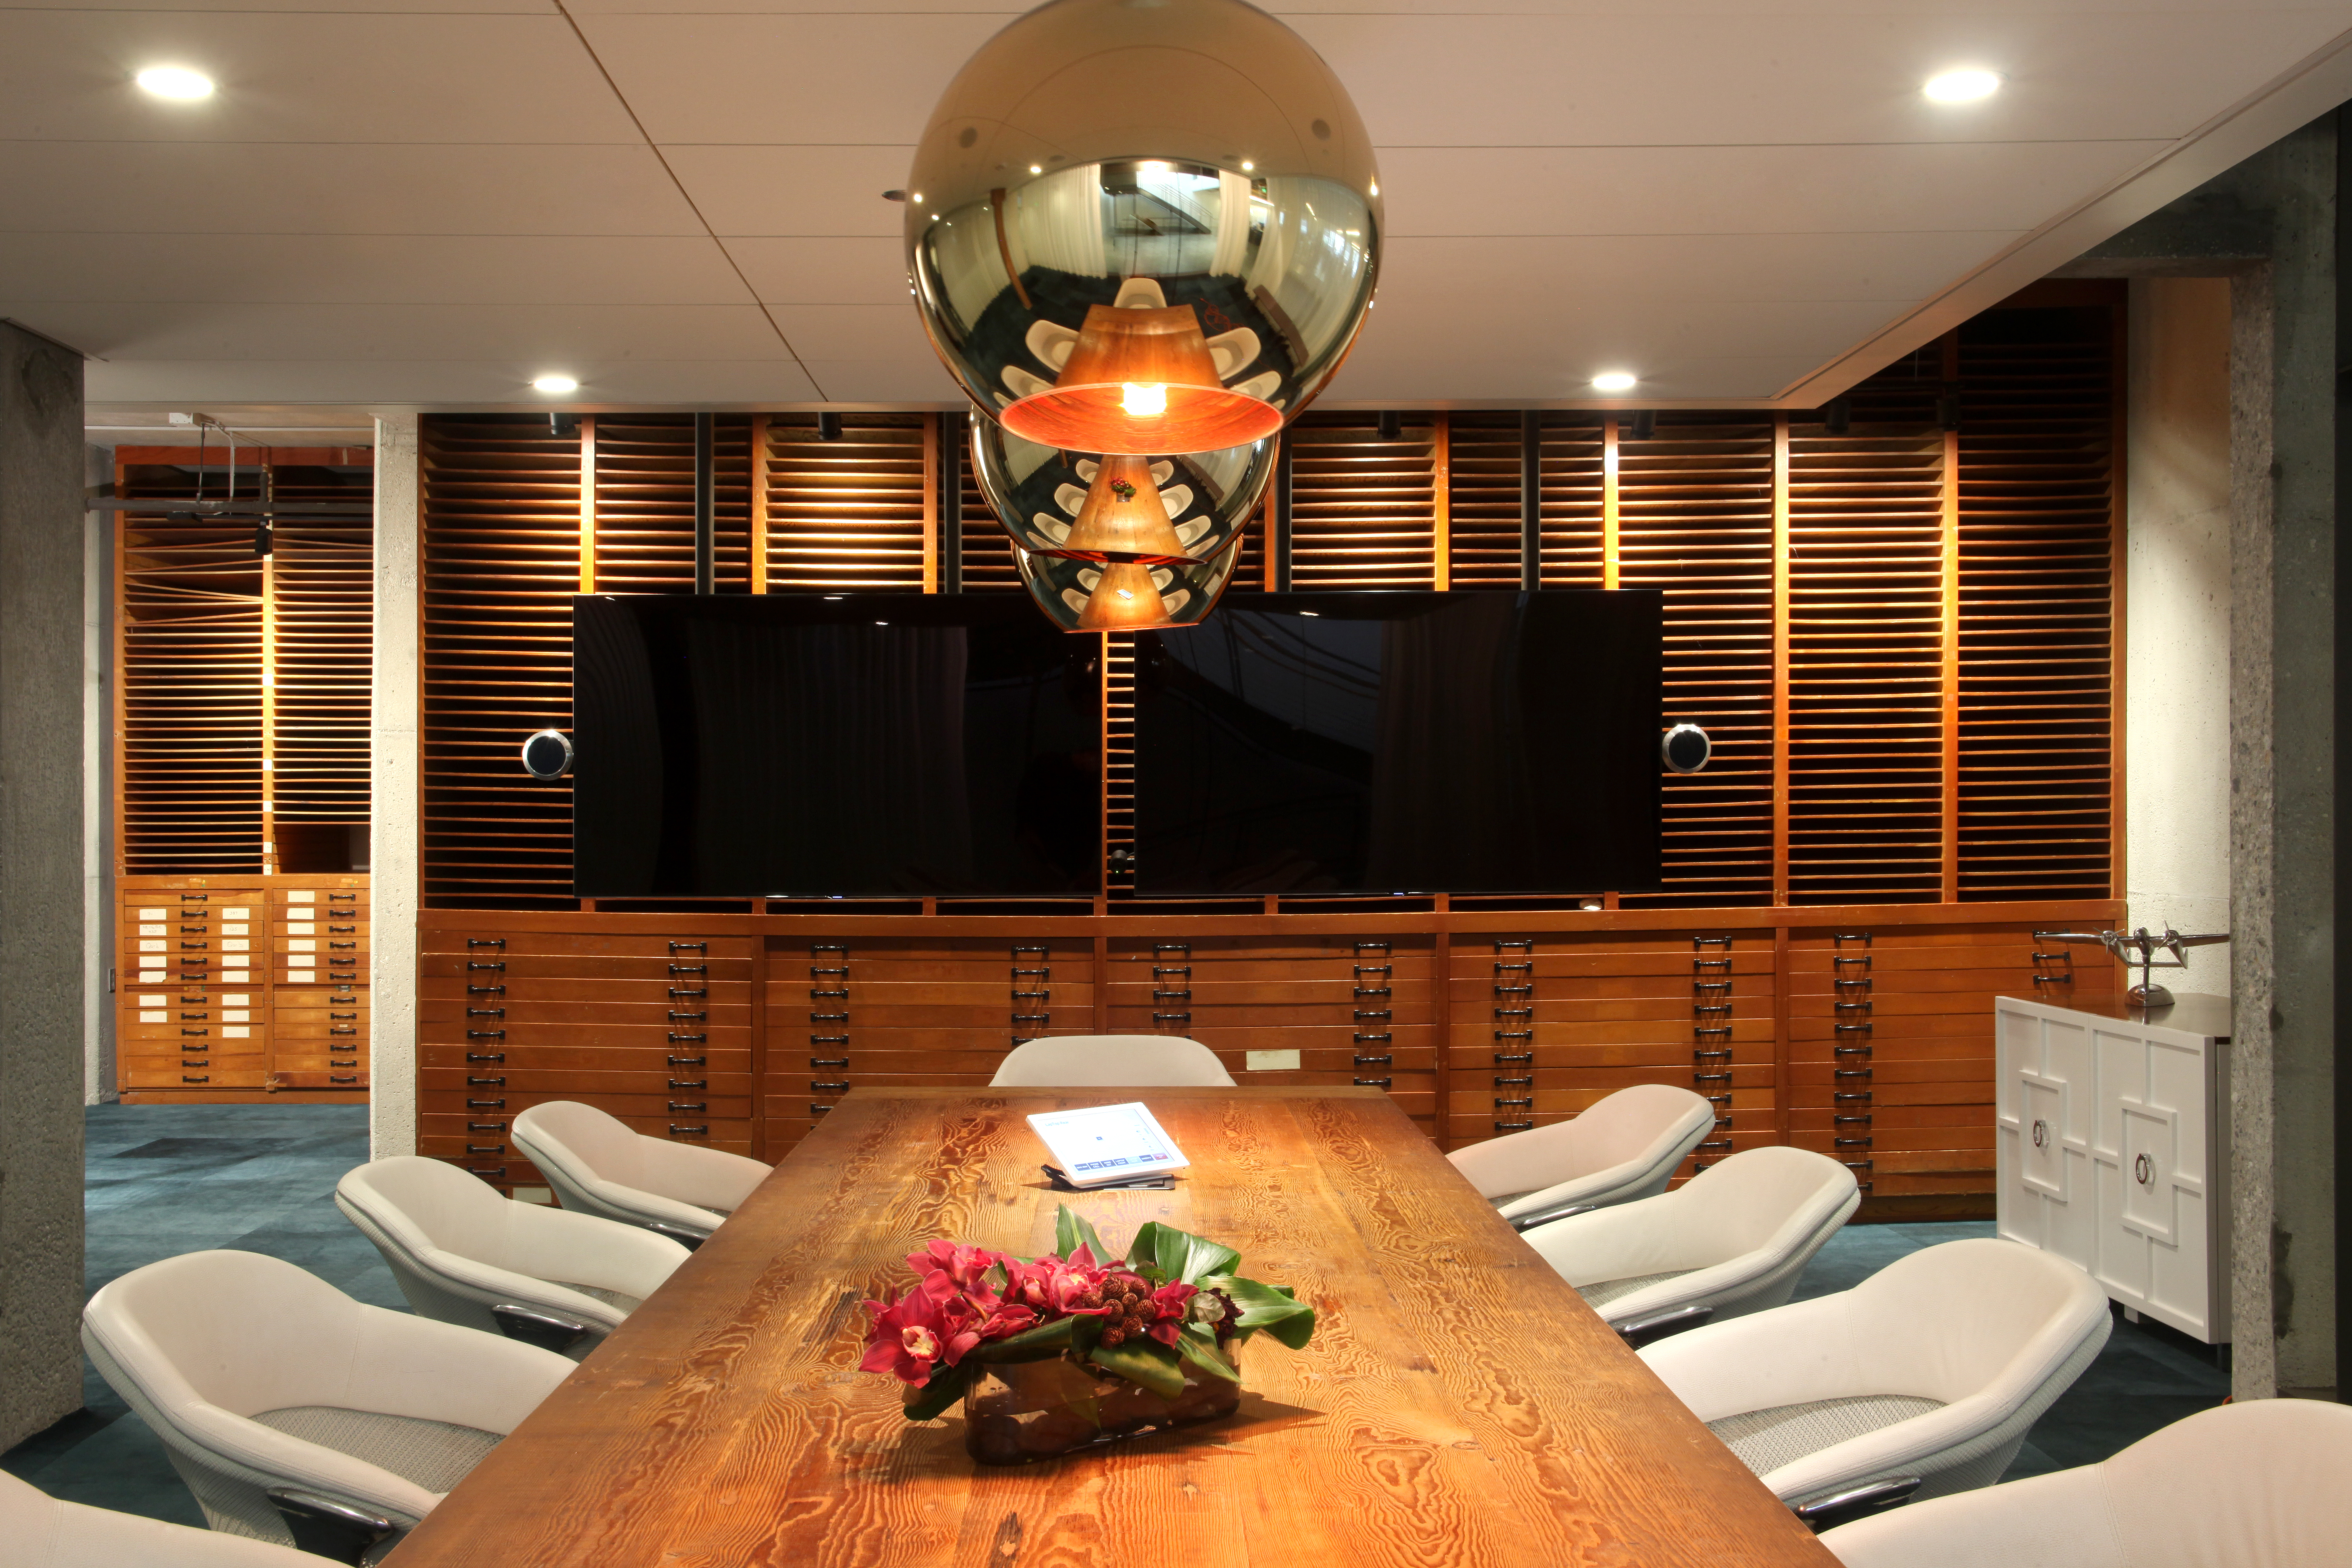 Howard Hughes' former office was restored to its original glory and is now used as a meeting space at 72 and Sunny.